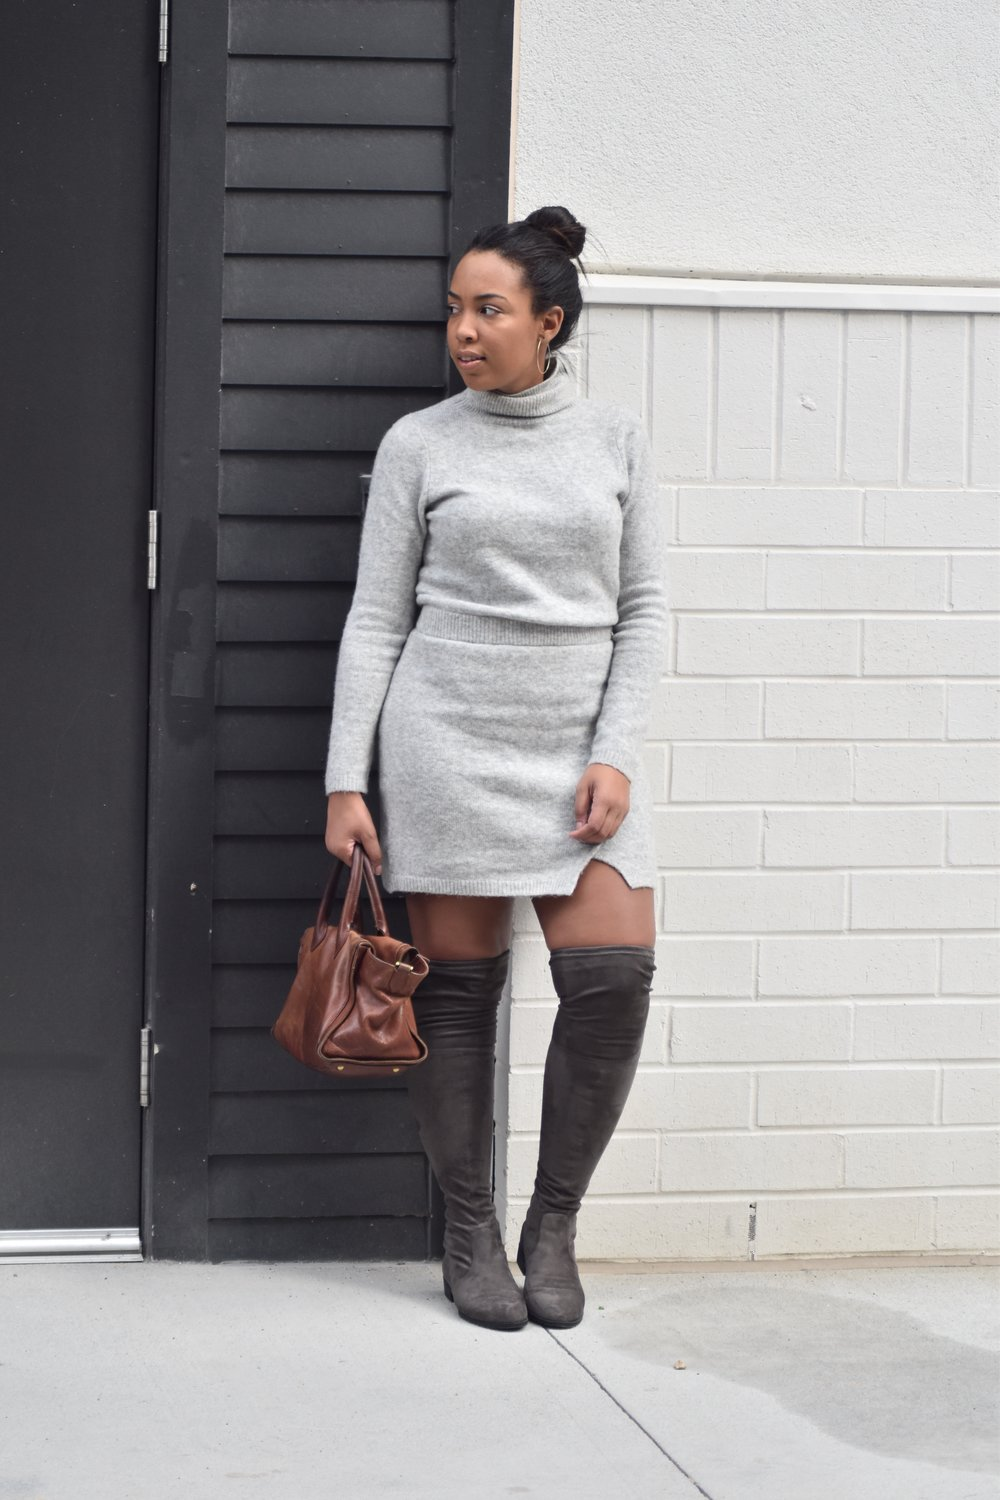 4-asos-sweater-dress-guess-factory-simplee-over-the-knee-boots-stuart-weitzman-lowland-boot-dupe-gray-fall-womens-fashion.JPG